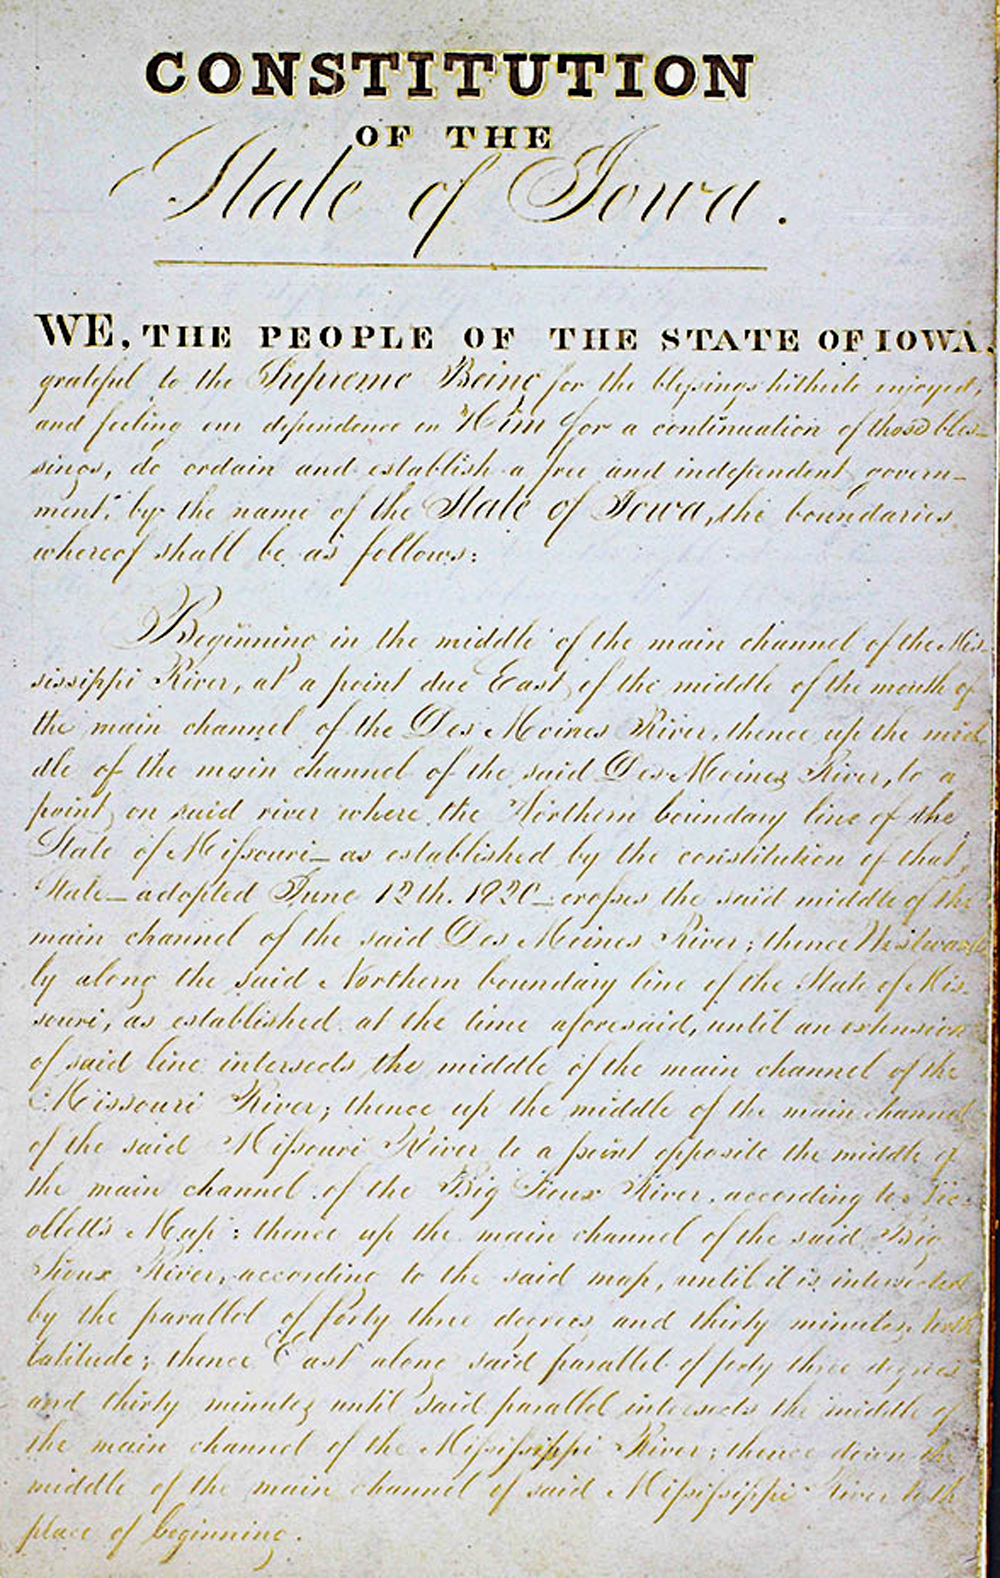 This document is the original official constitution of the State of Iowa from 1857,